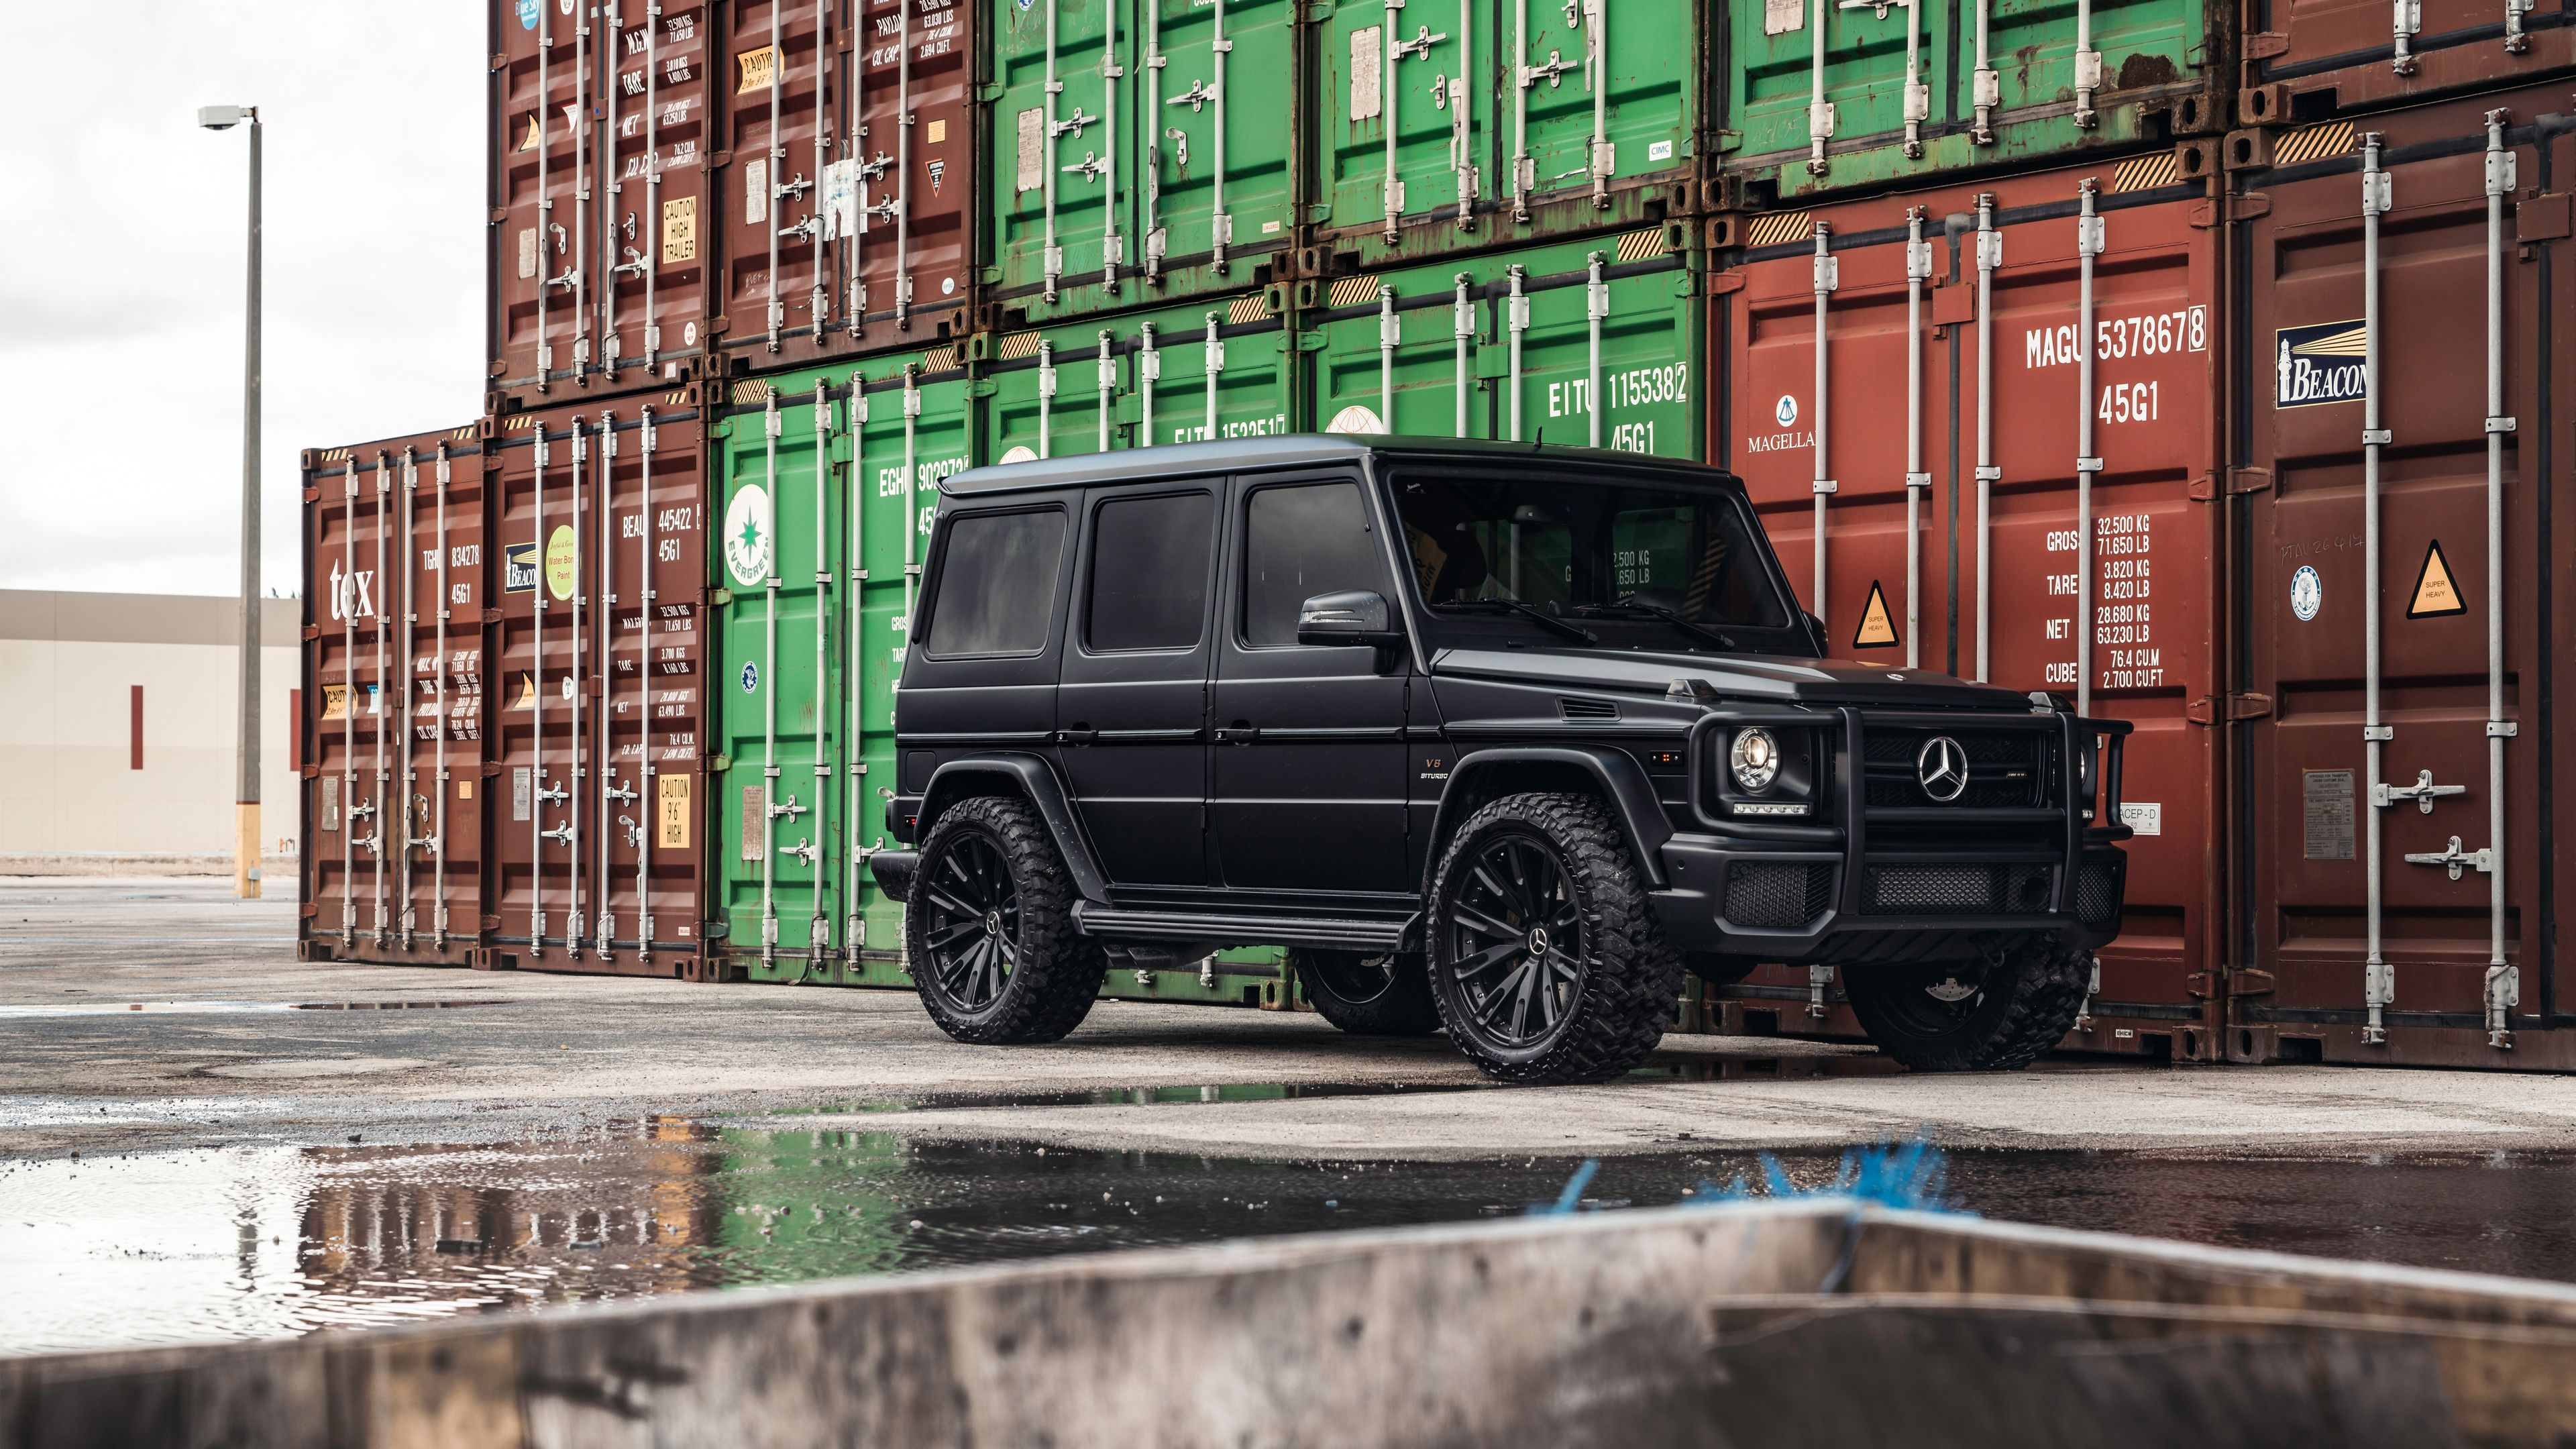 Wallpaper 4k Mercedes G Wagen 2017 4k Wallpapers 5k Wallpapers